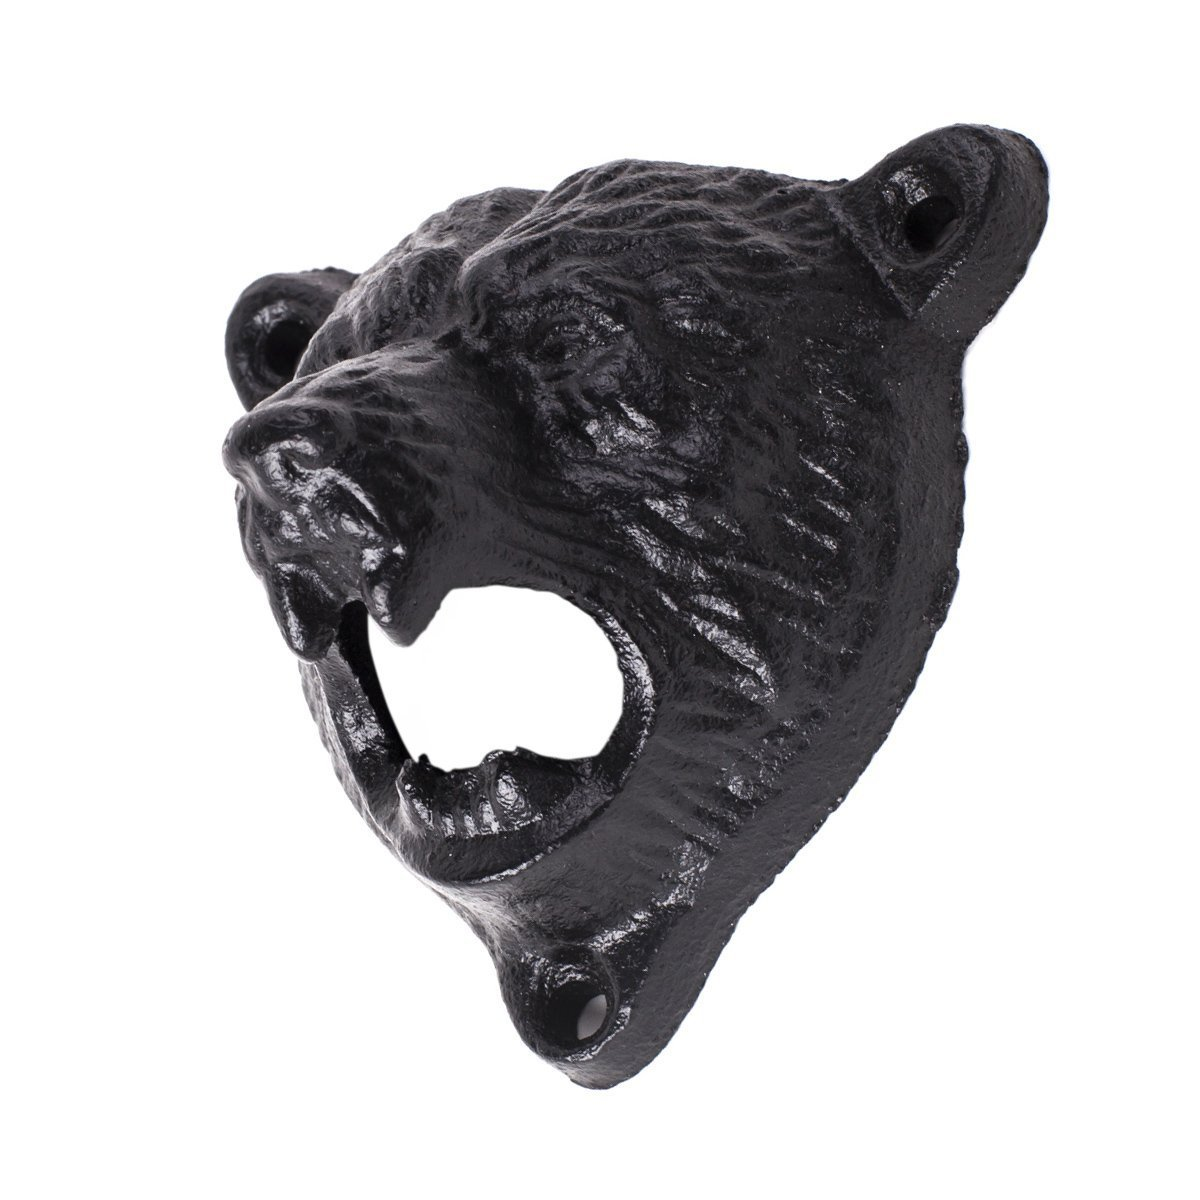 Cast Iron Wall Mount Grizzly Bear Teeth Bite Bottle Opener (Black) 2